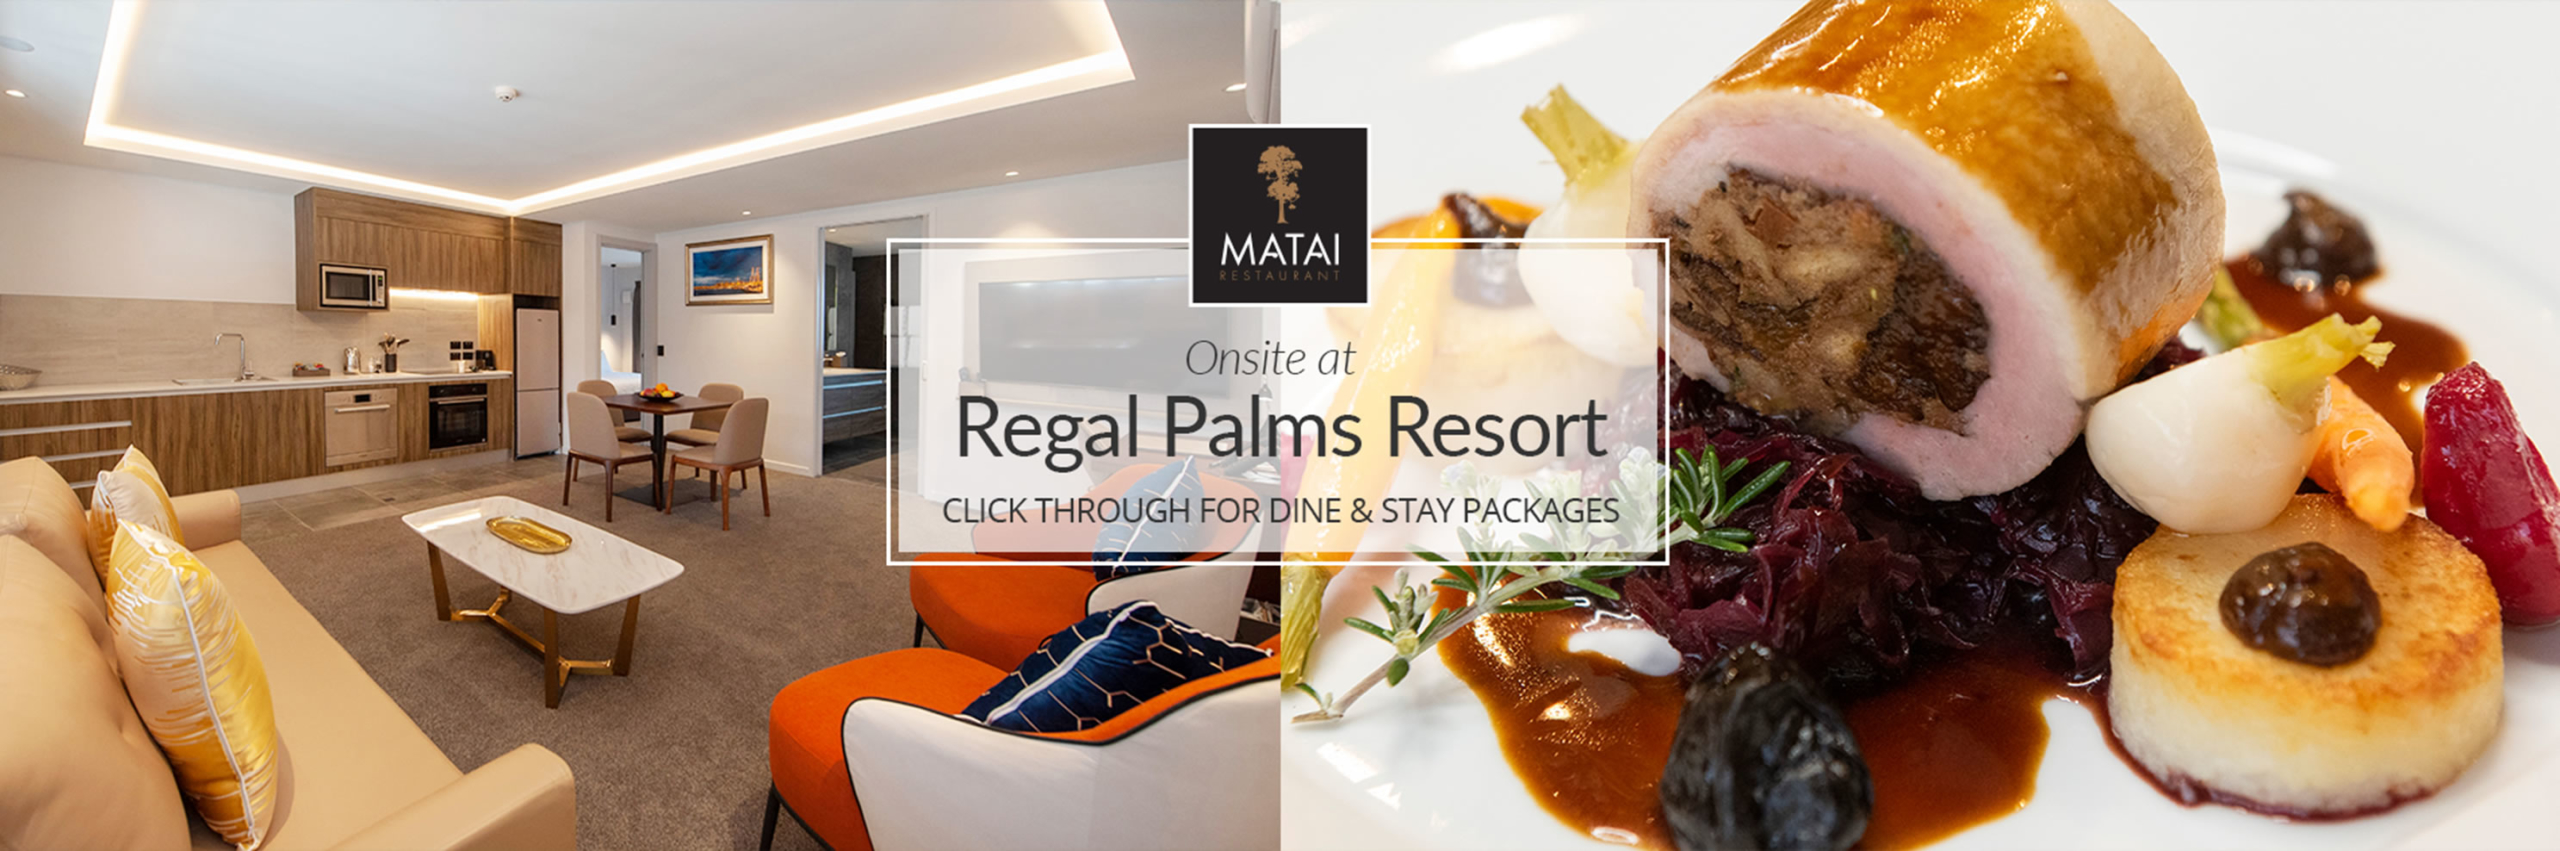 Click through for dine and stay packages at Regal Palms Resort Rotorua